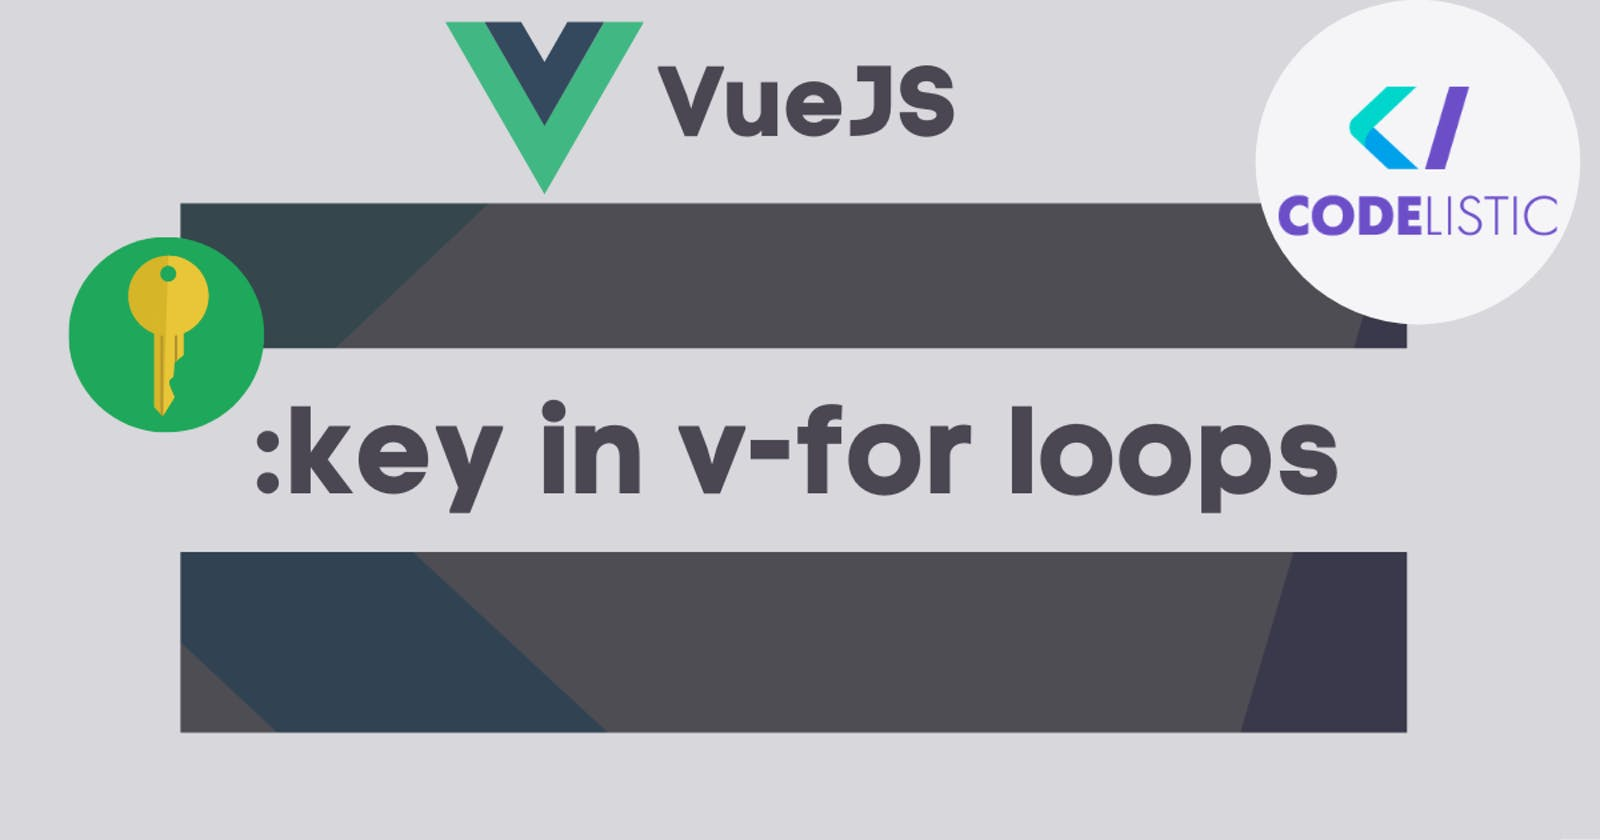 How & Why to use the `:key` attribute in VueJS v-for loops